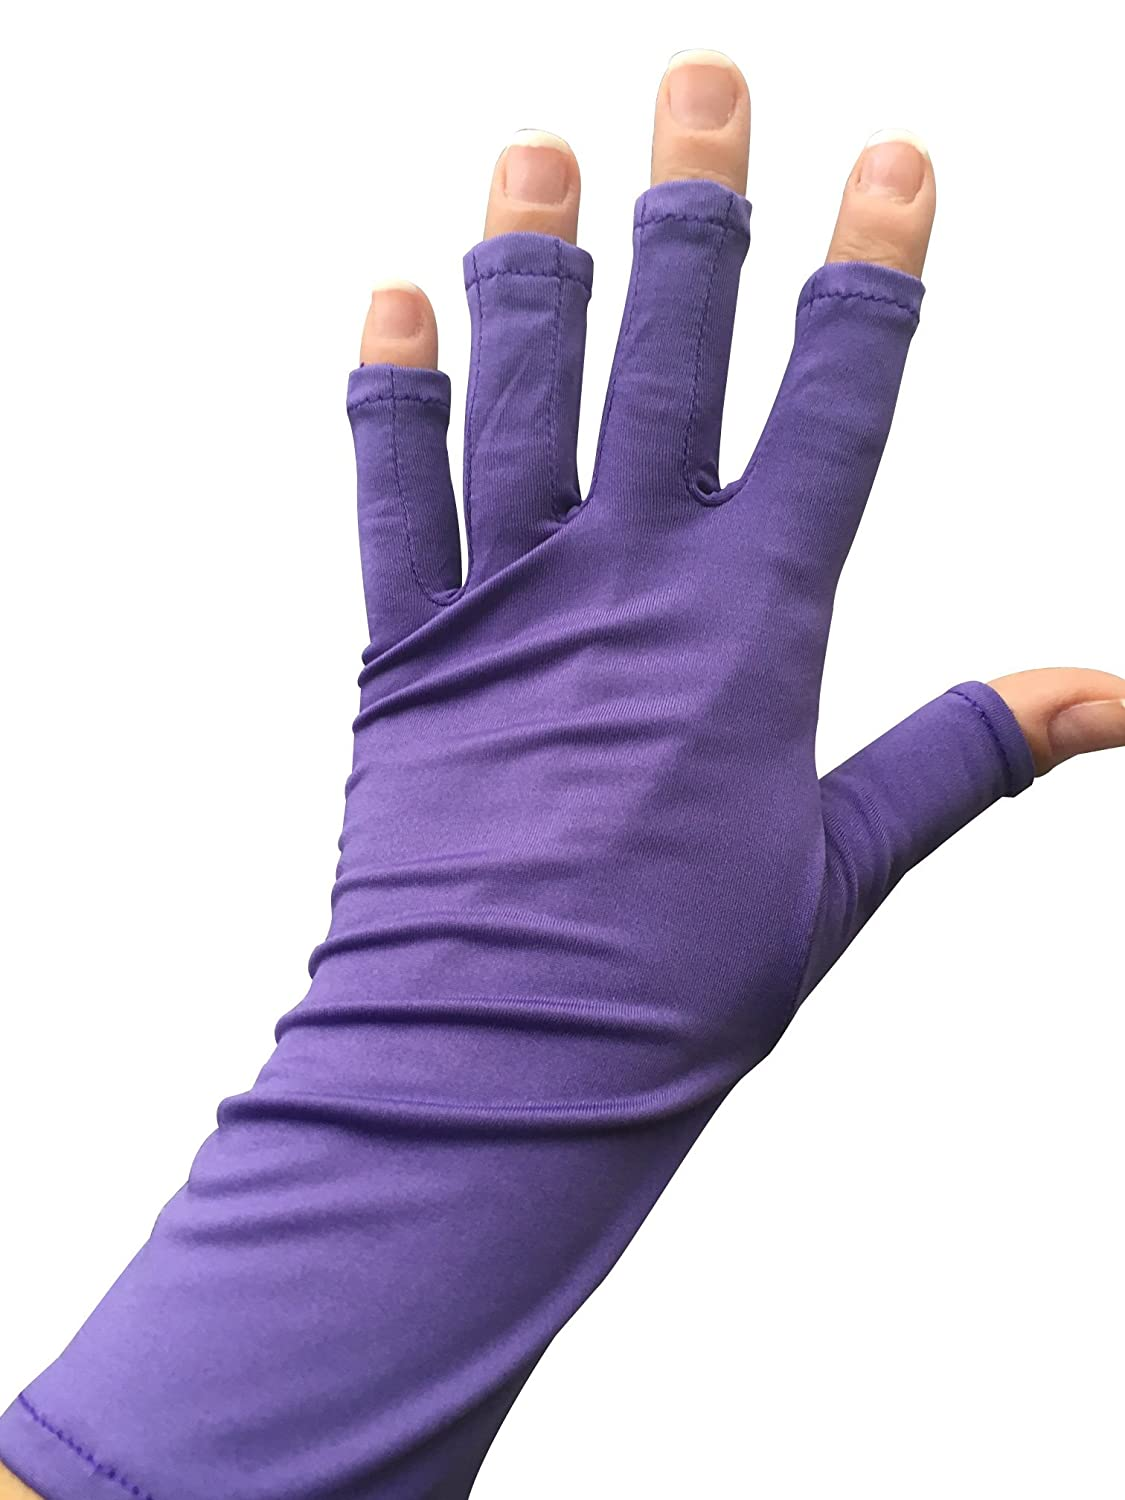 Amazon.com : UV Gloves, Fingerless Protection for Nails Gel Manicure ...